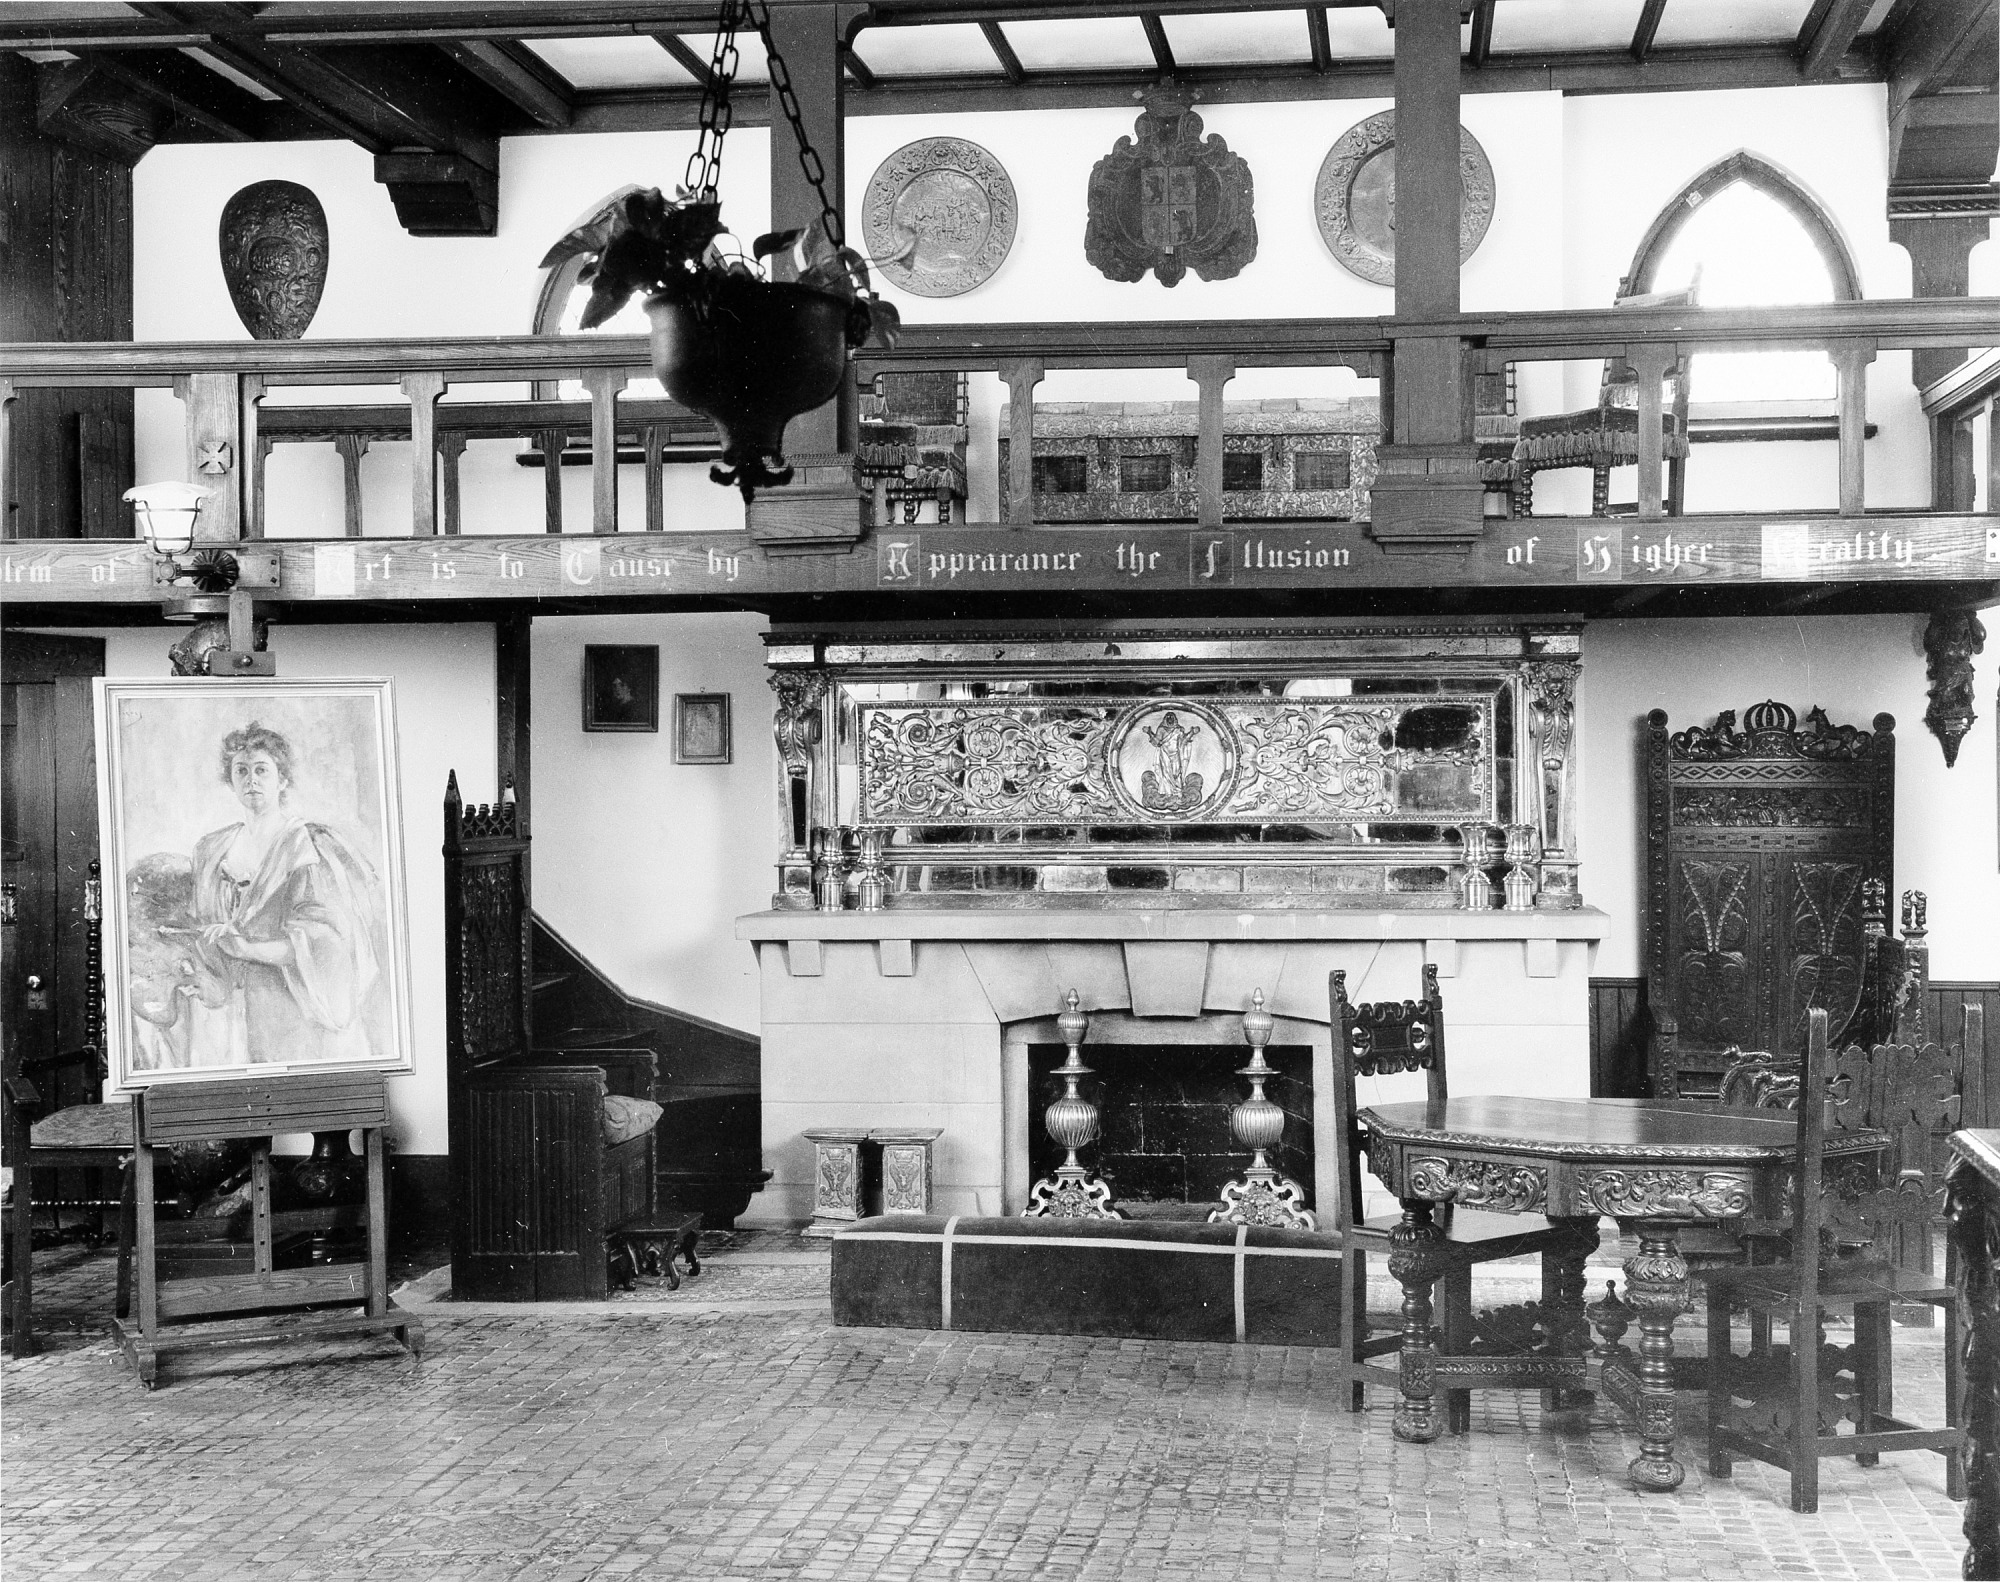 Barney Studio House, Interior, by Unknown, Smithsonian Archives - History Div, 92-3532.